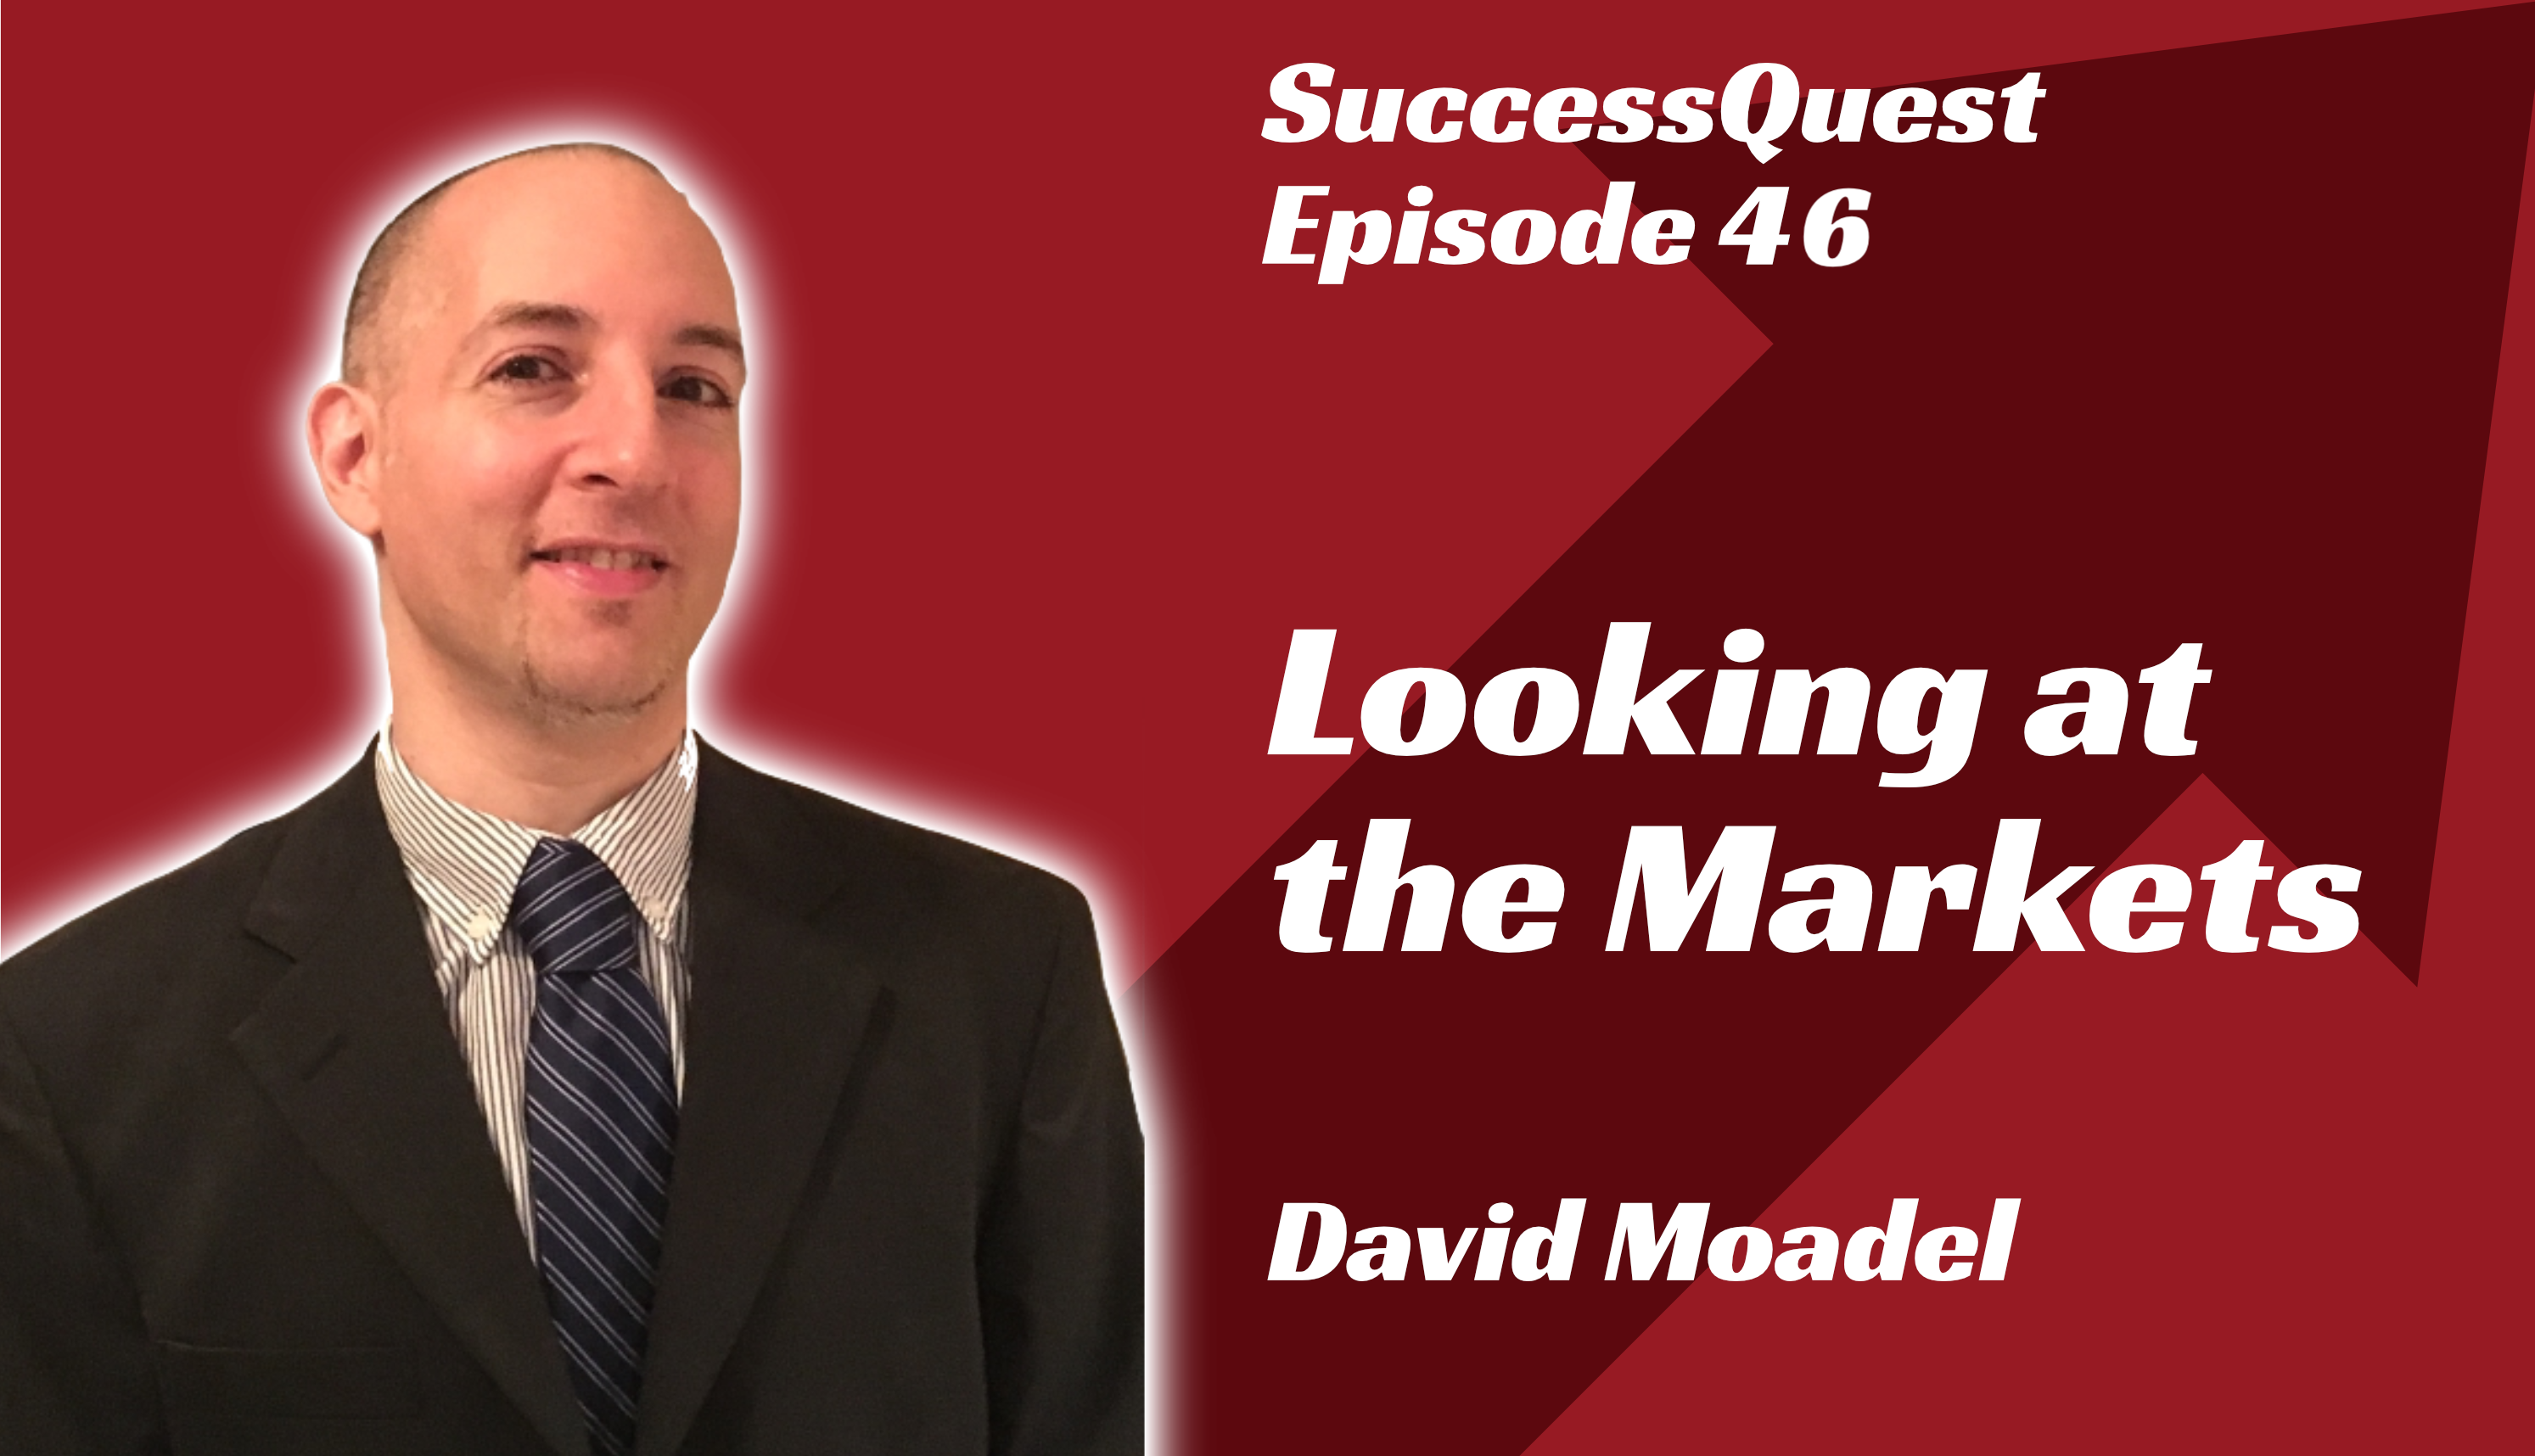 David Moadel Looking at the Markets SuccessQuest